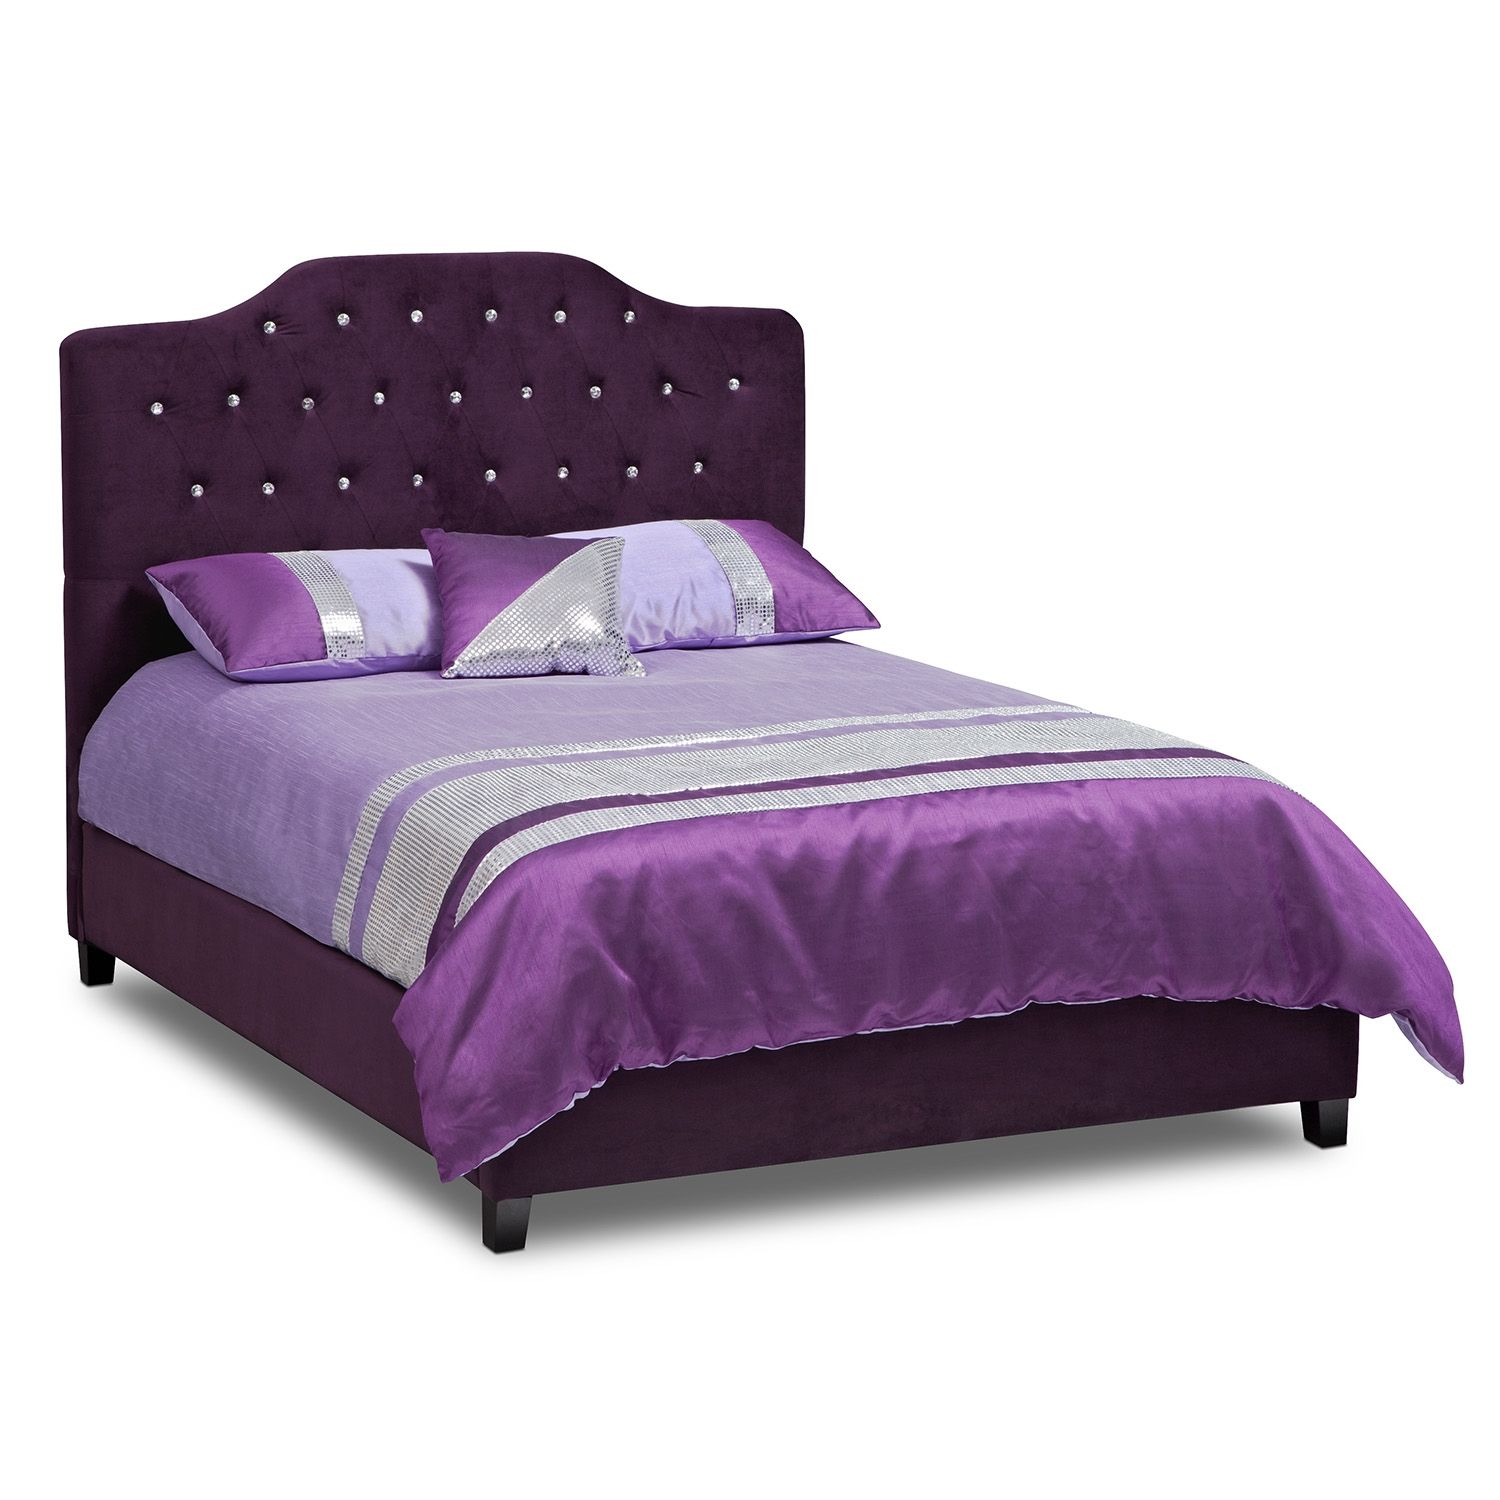 Valerie Ii Queen Bed Value City Furniture Purple Bed Frame